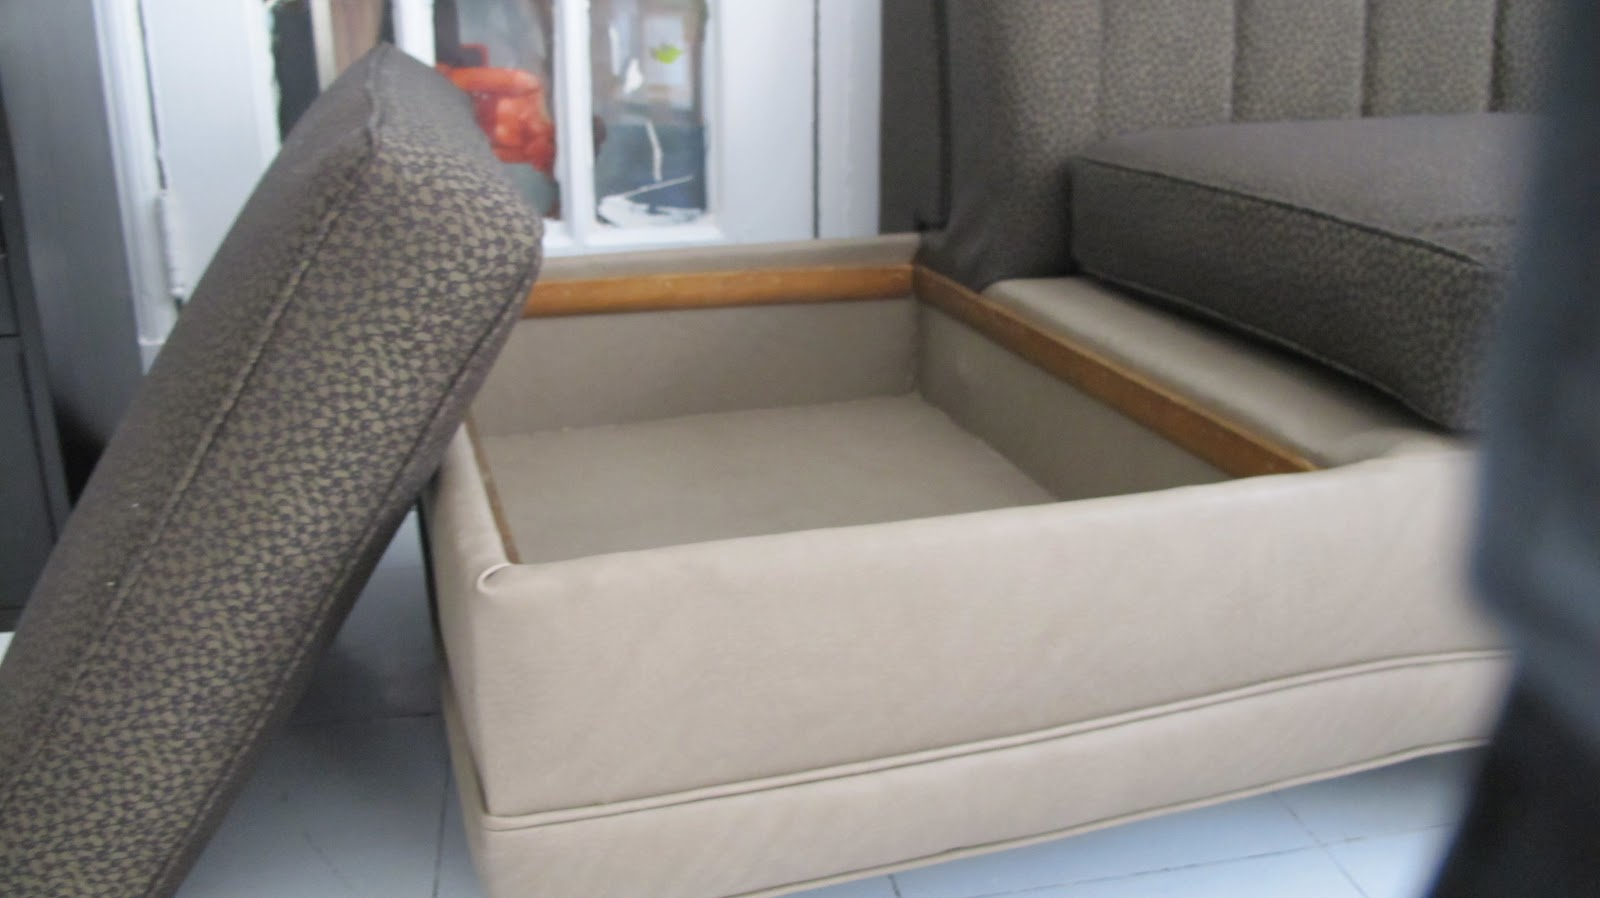 How Much Is It To Reupholster A Couch Home Improvement